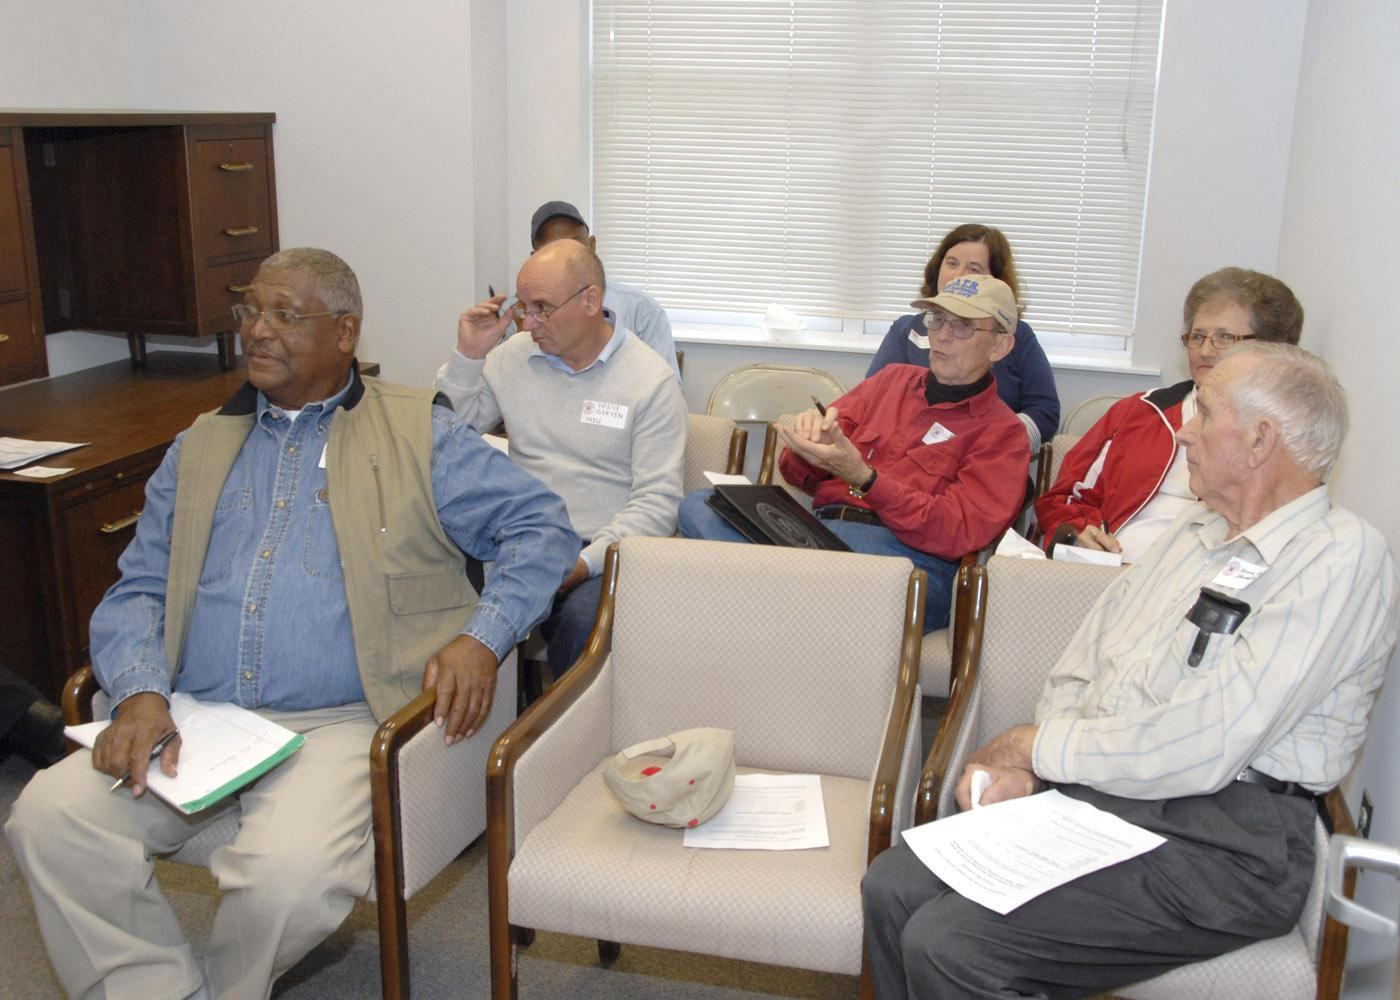 The newly formed fruits and nuts commodity group met for the first time to set priorities for research and education programs at Mississippi State University during the annual North Mississippi Producer Advisory Council meeting. (Photo by Bob Ratliff)